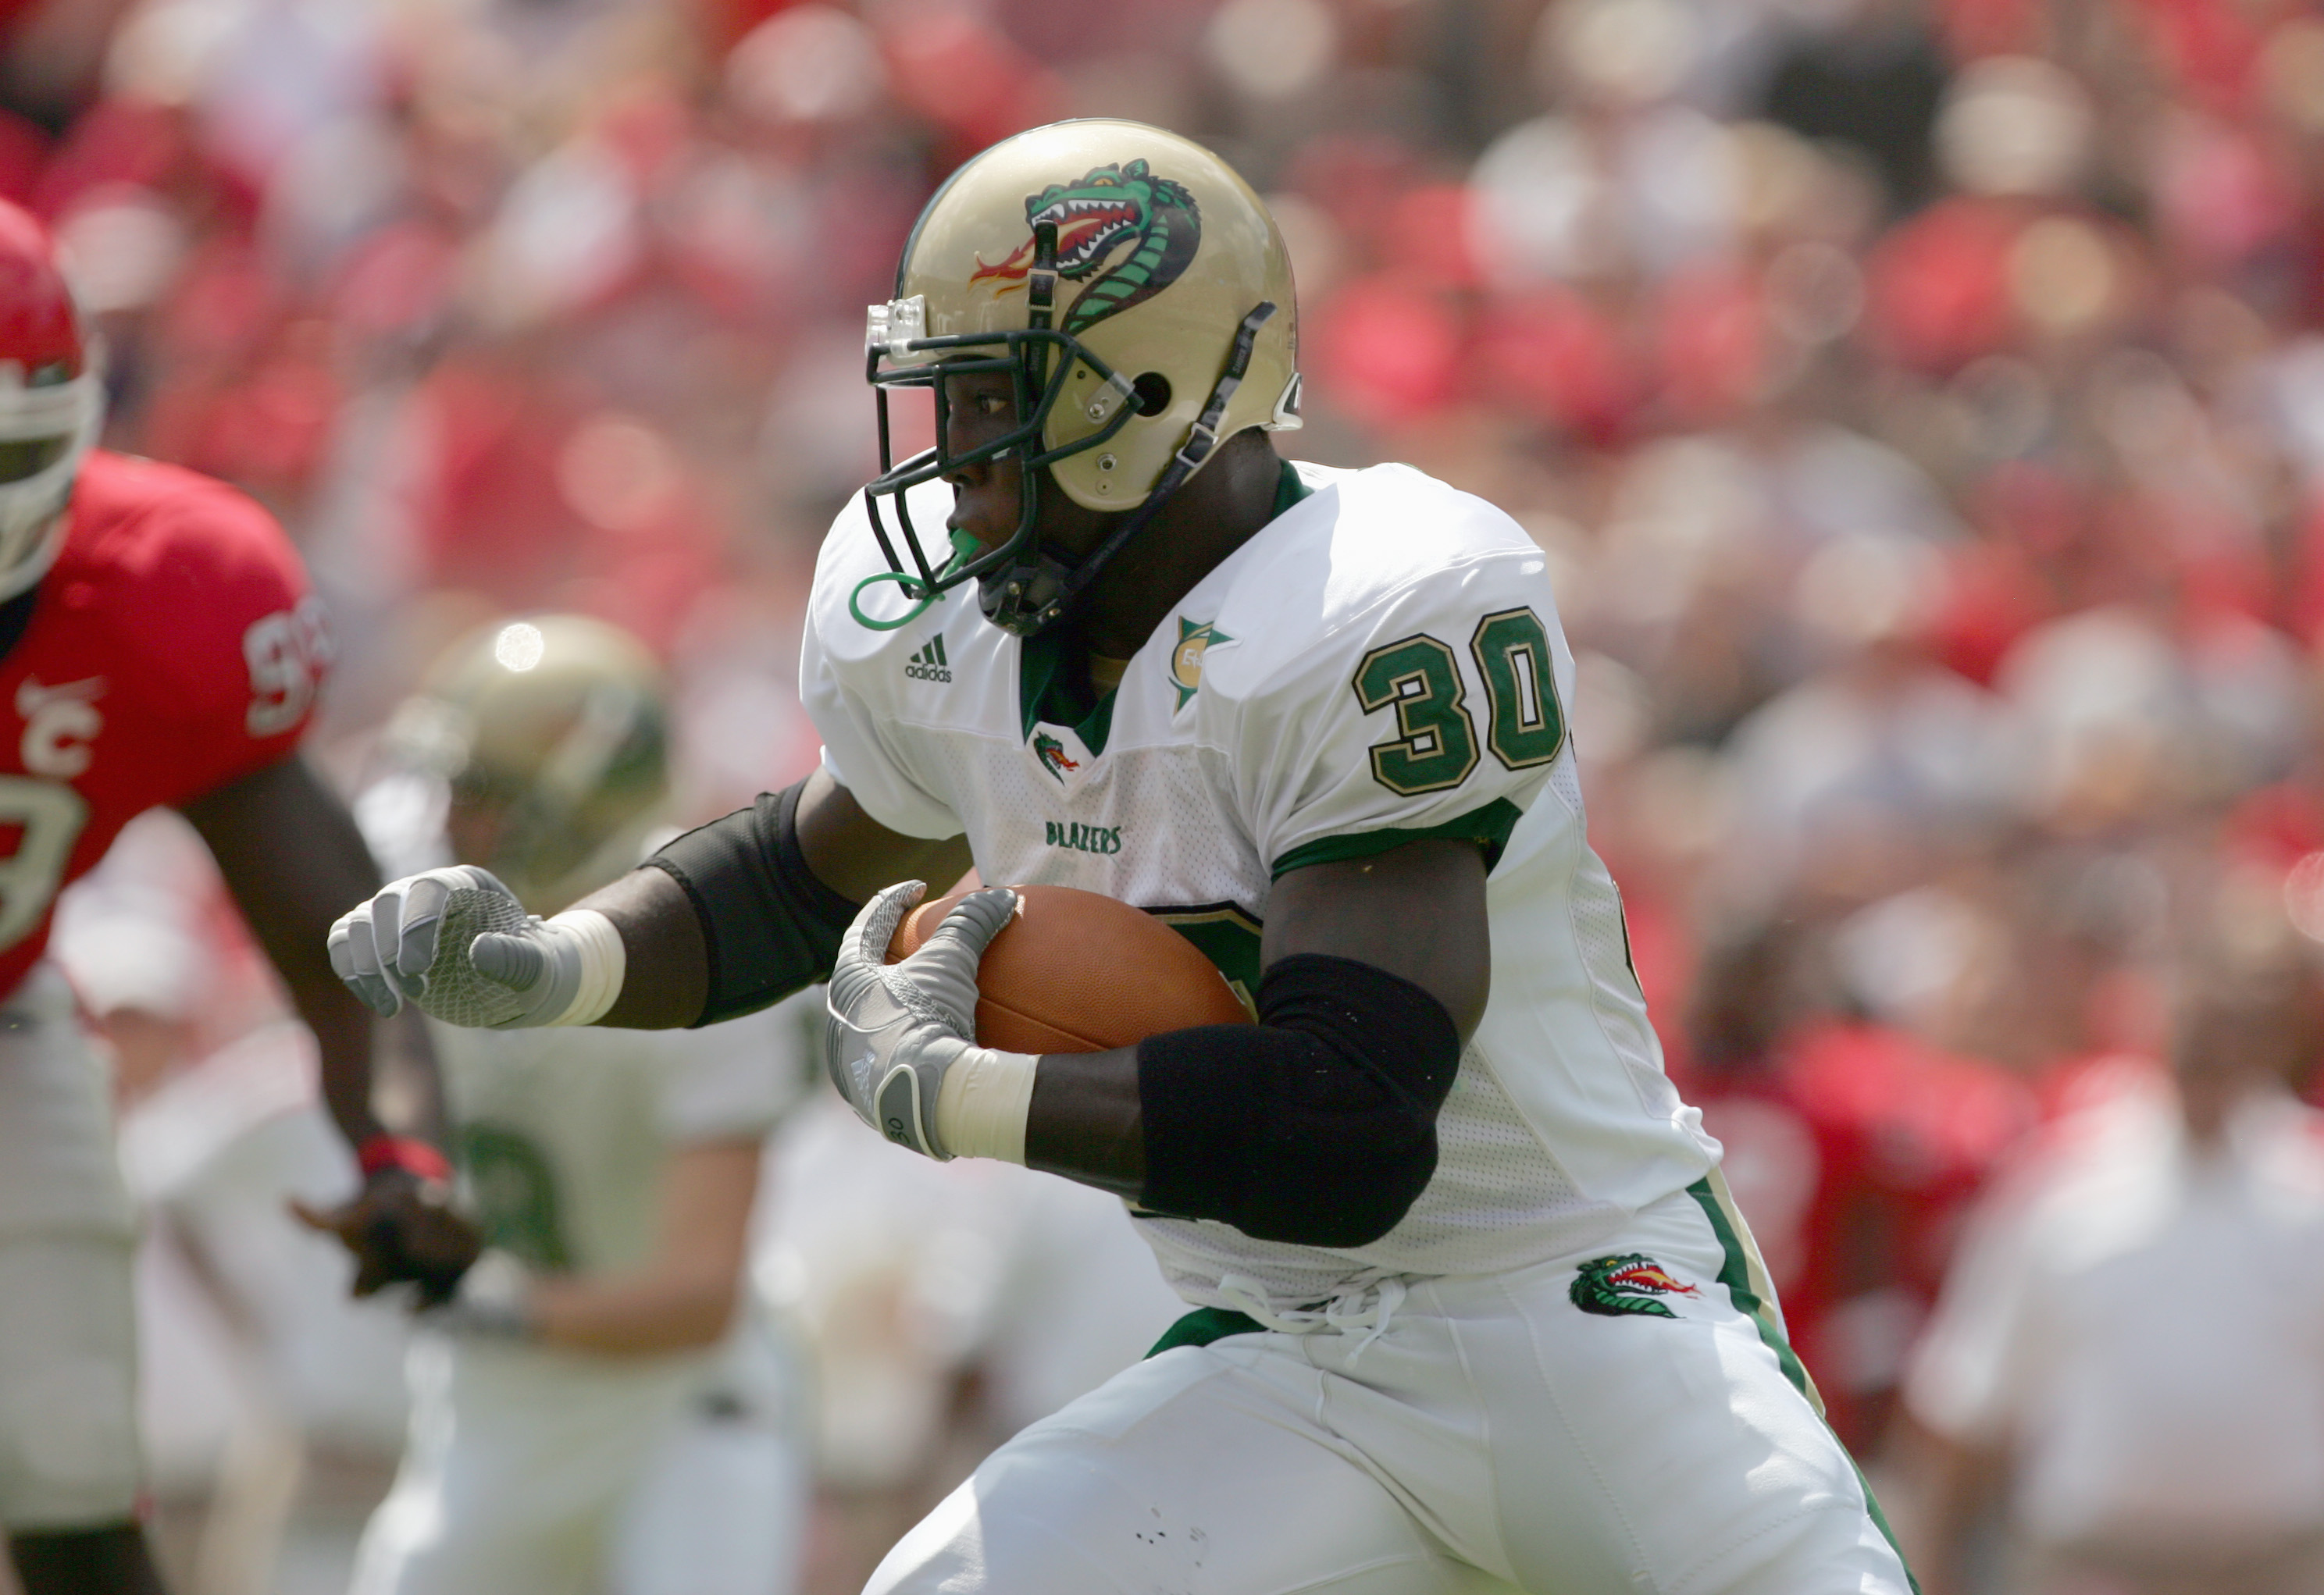 ATHENS, GA - SEPTEMBER 16:  Corey White #30 of the UAB Blazers carries the ball during their game against the Georgia Bulldogs on September 16, 2006 at Sanford Stadium in Athens, Georgia. (Photo by Streeter Lecka/Getty Images)